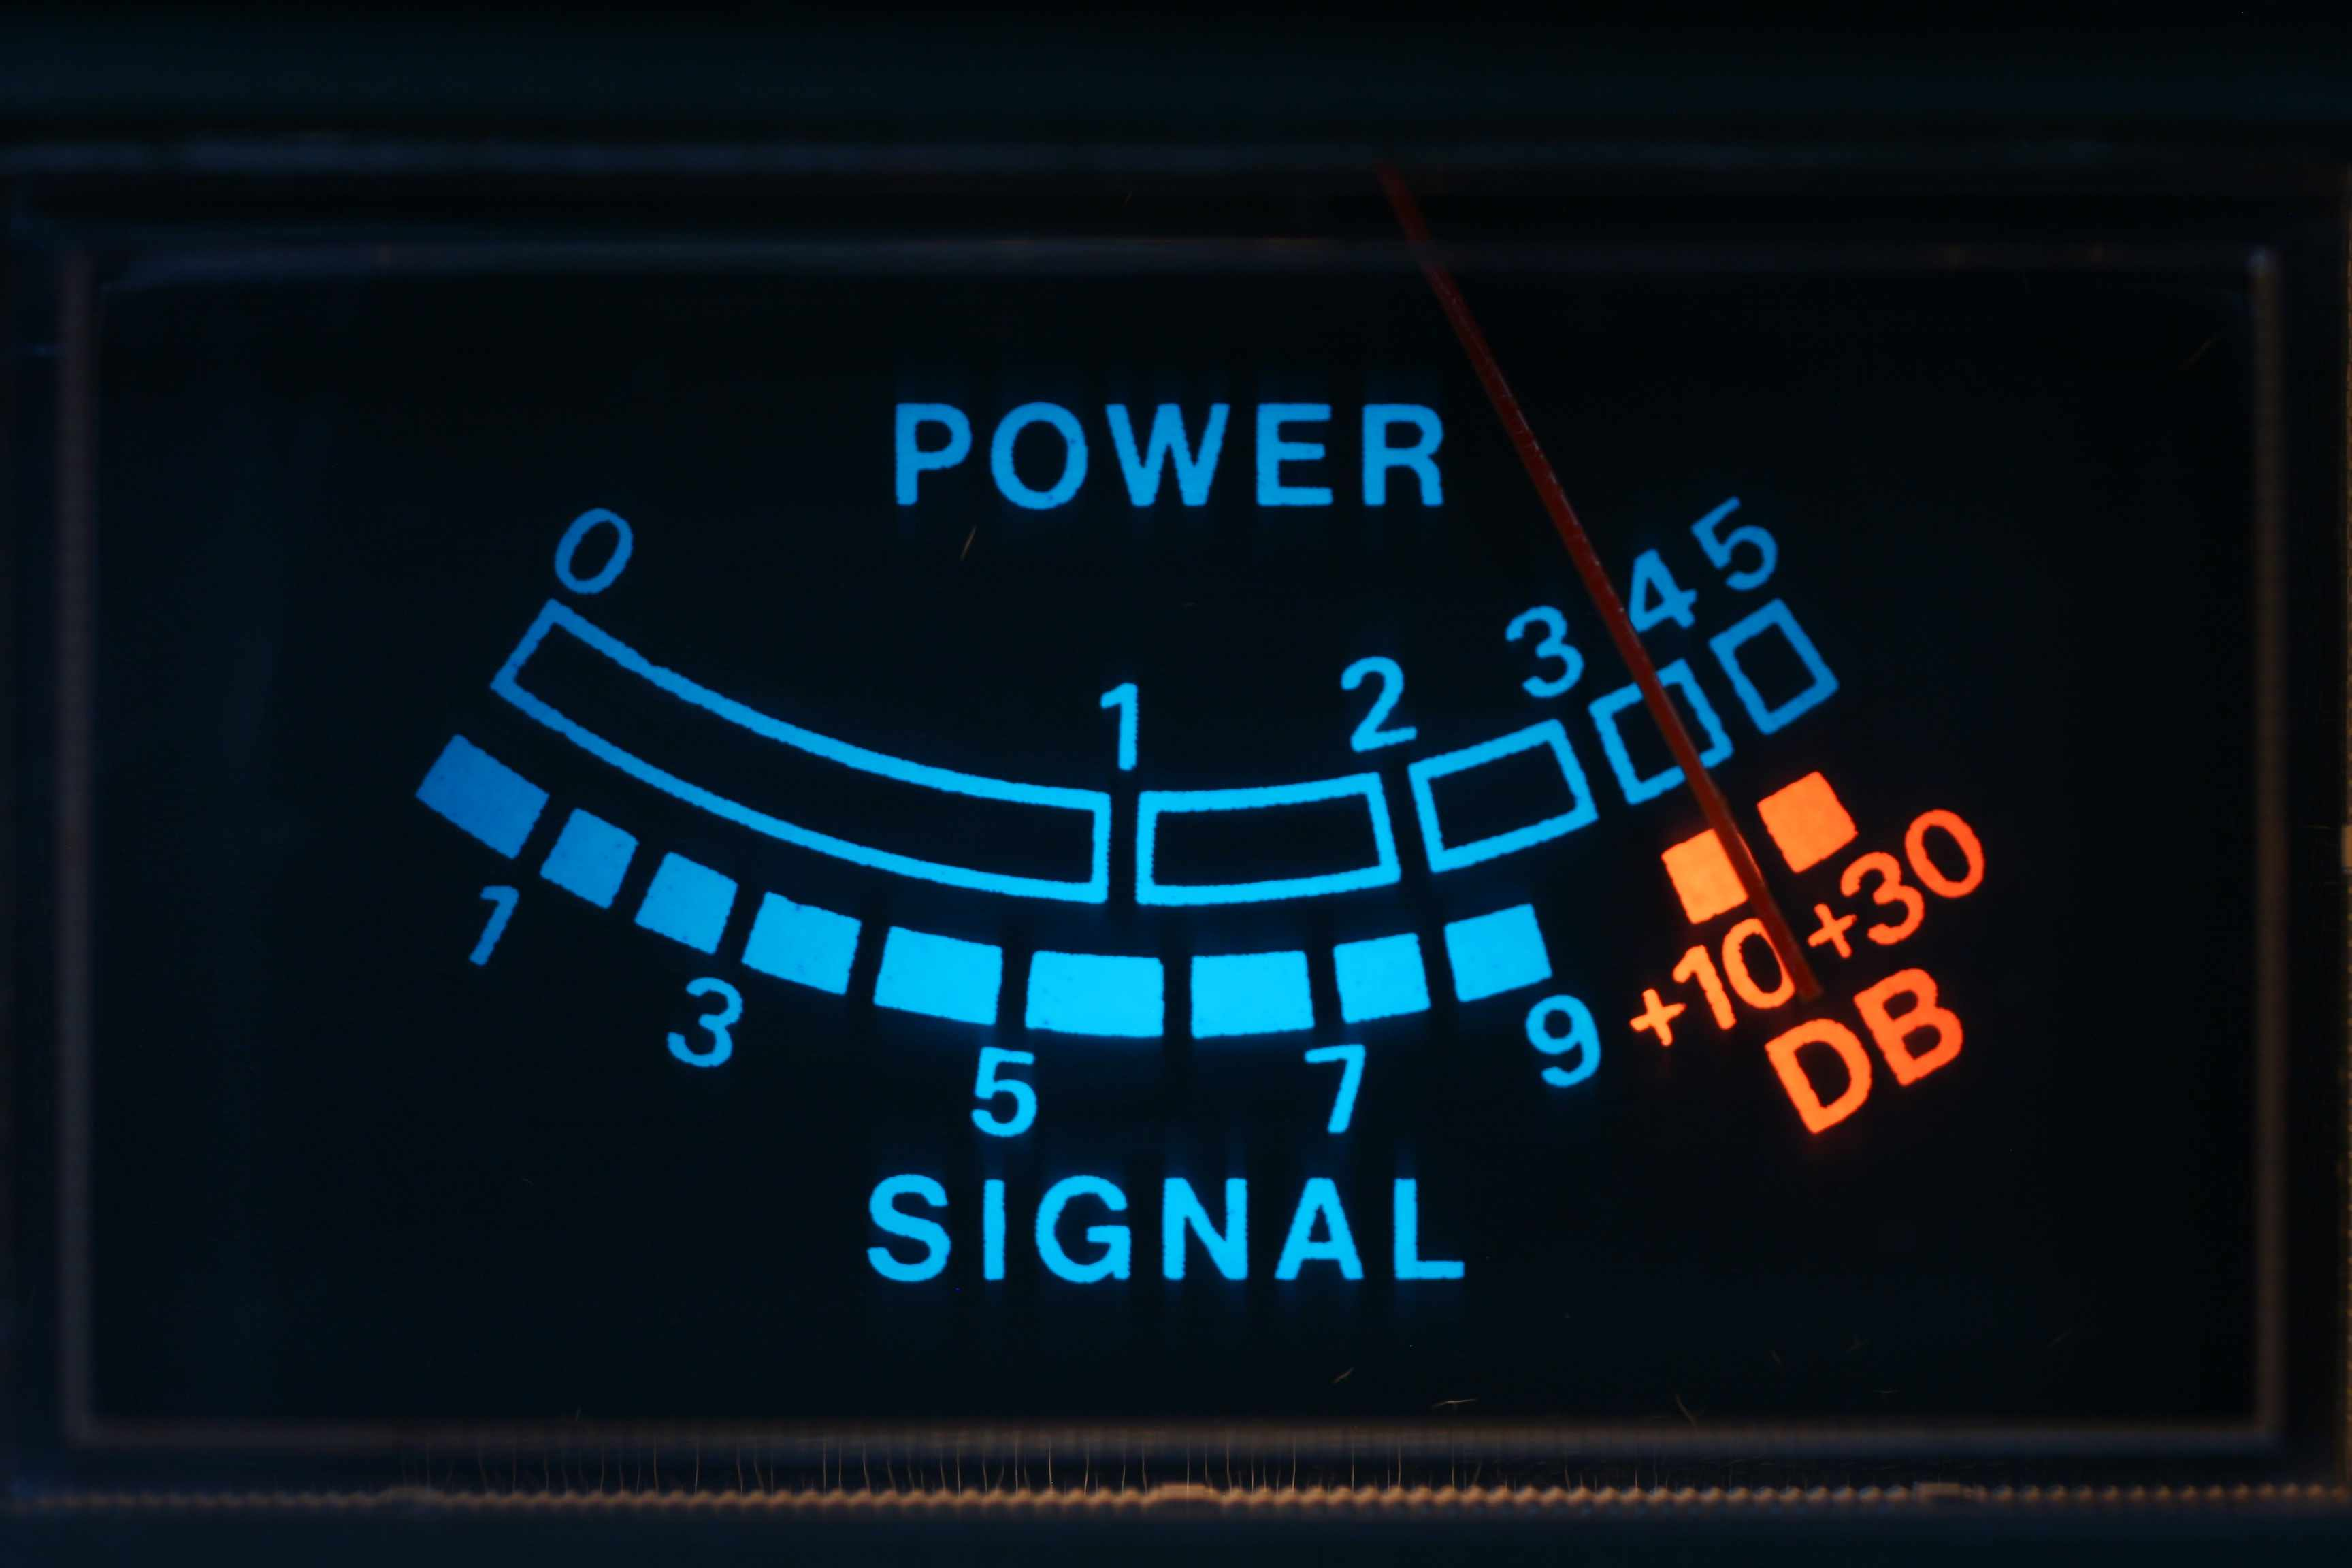 A signal strength meter showing input power and output decibels